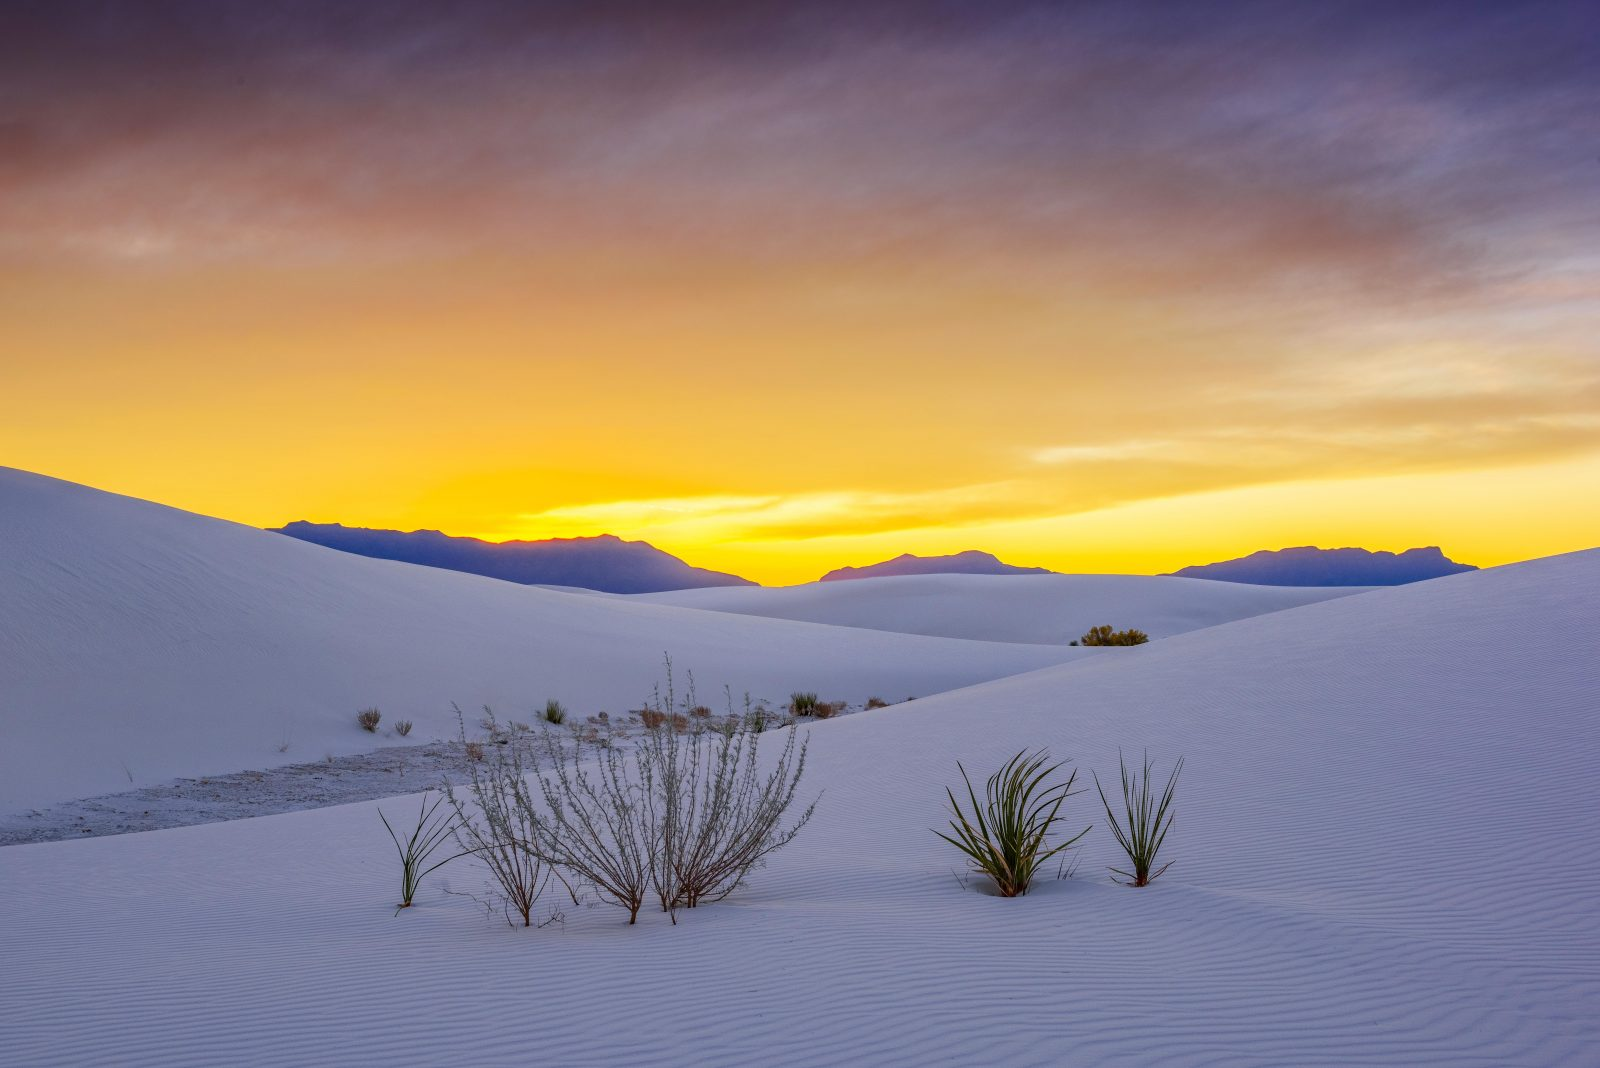 White sands autumn sunset 2